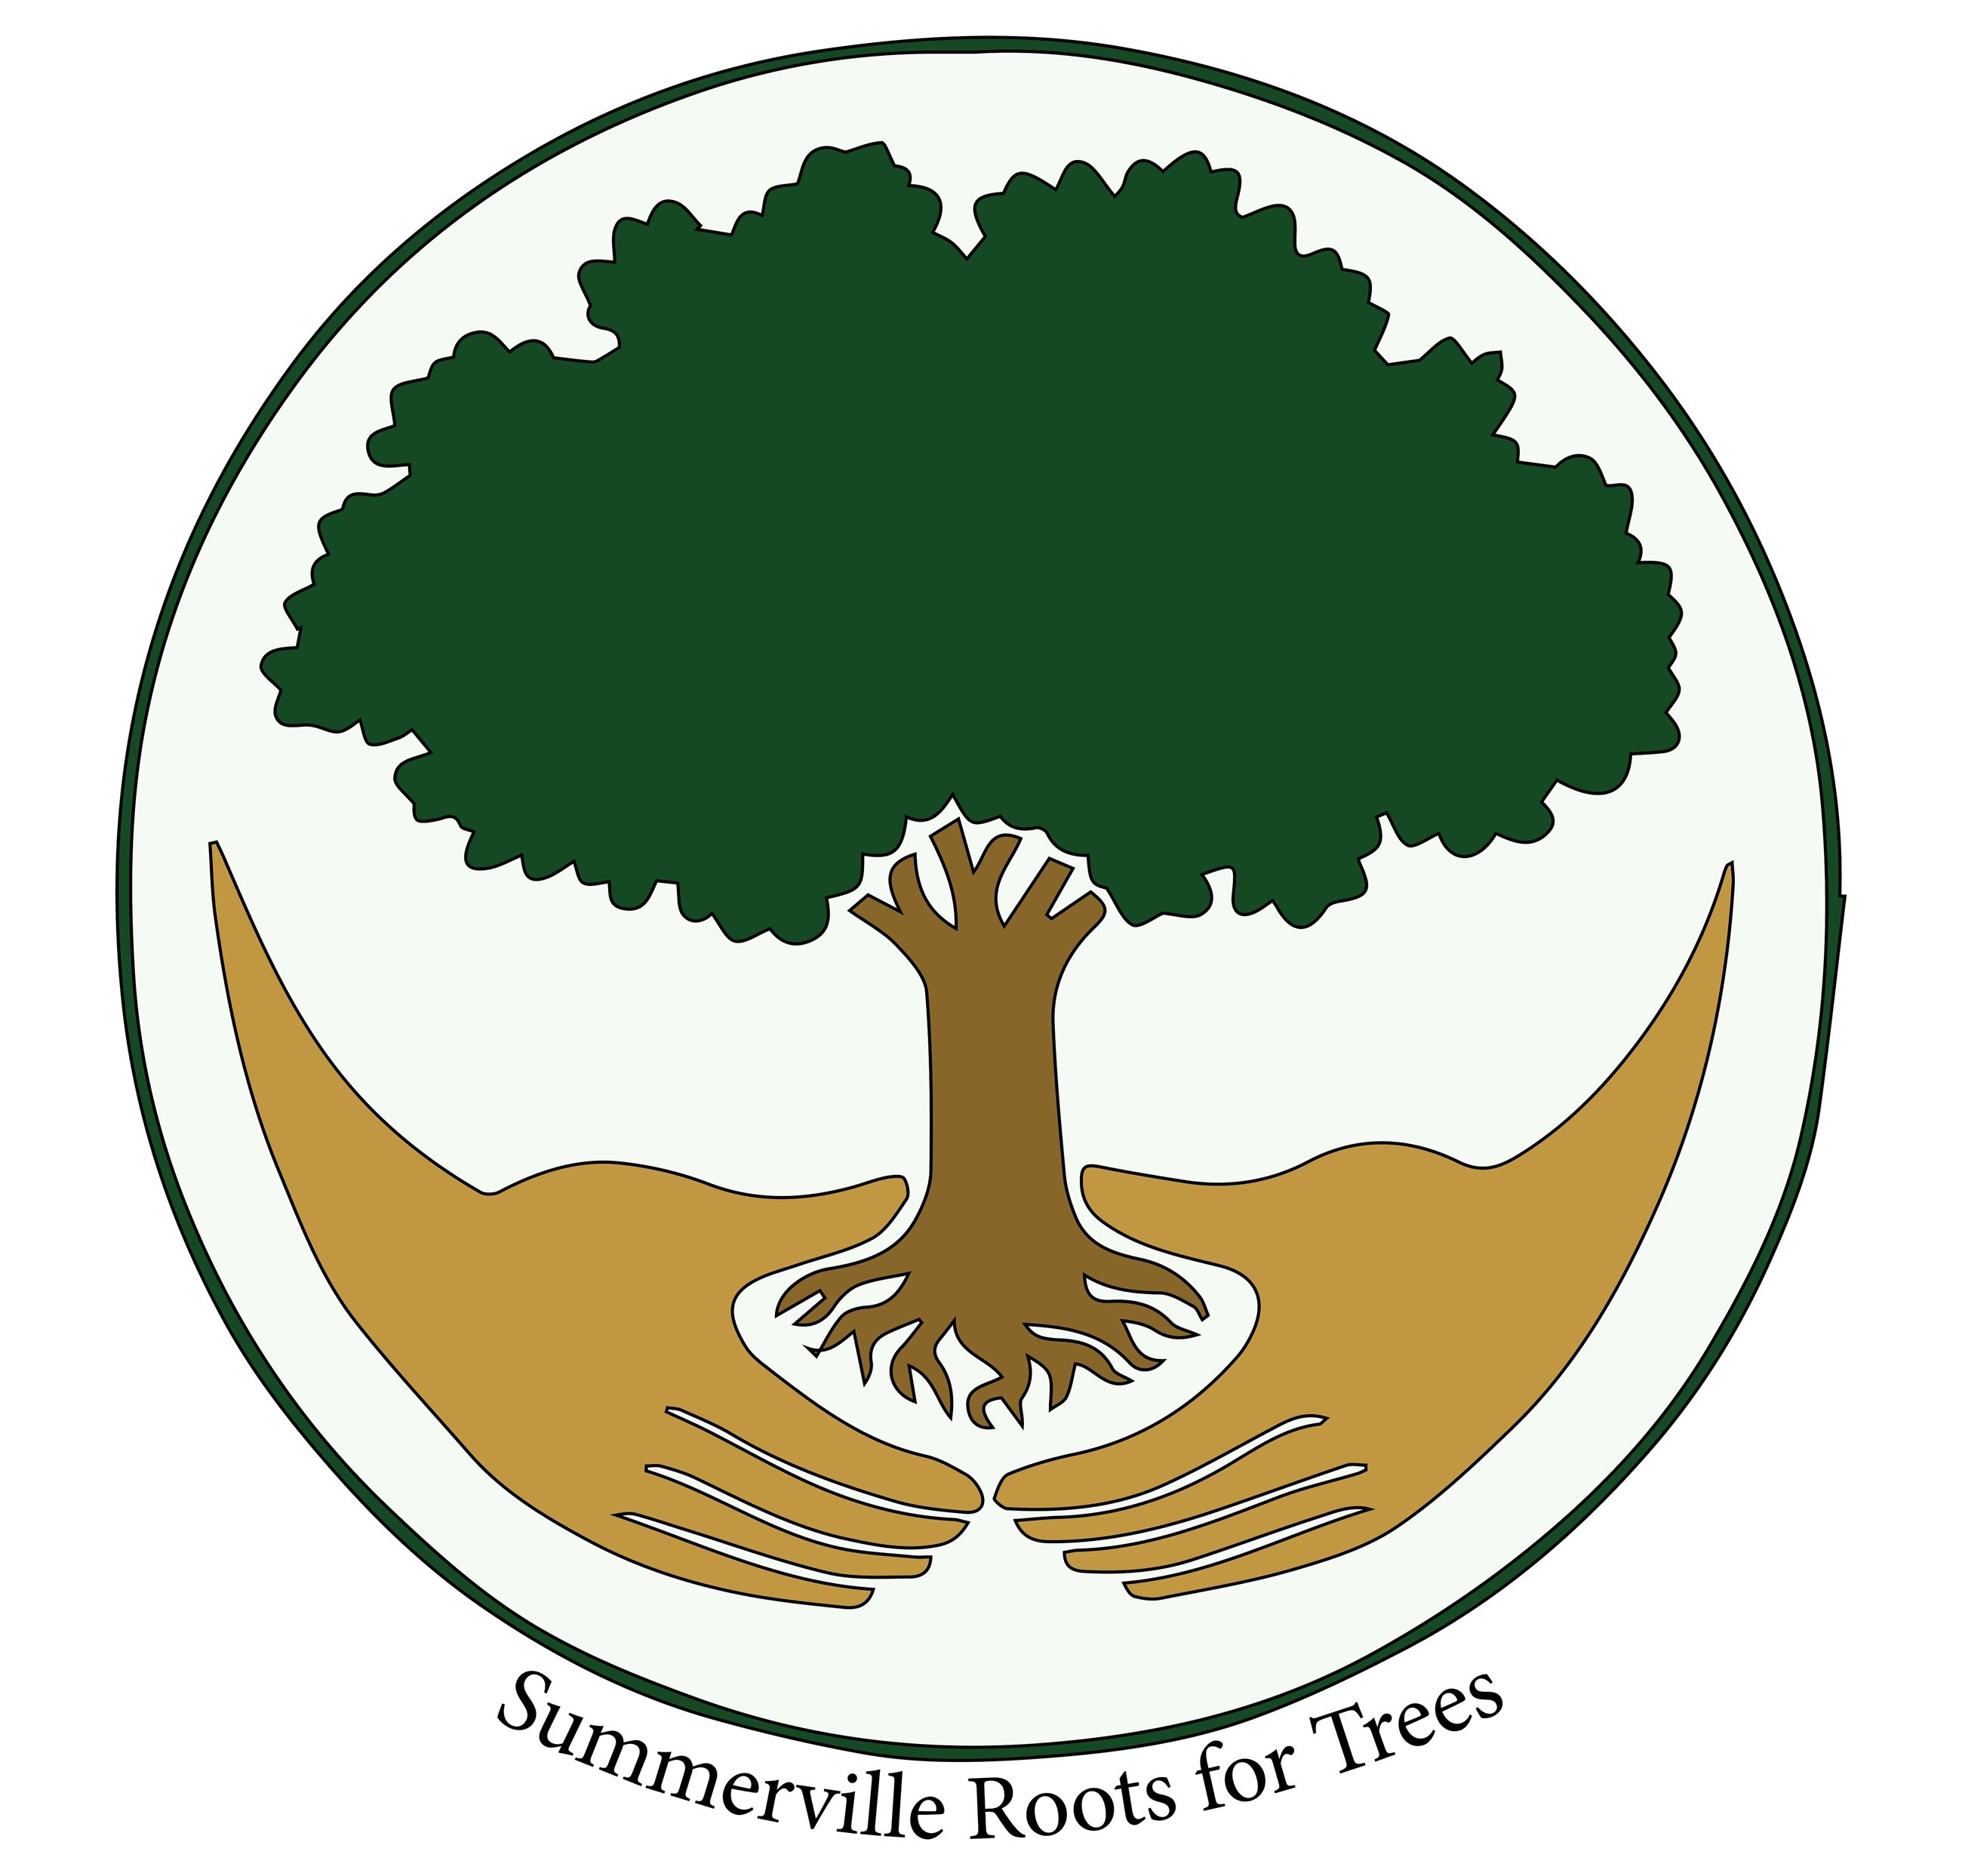 Summerville Roots for Trees